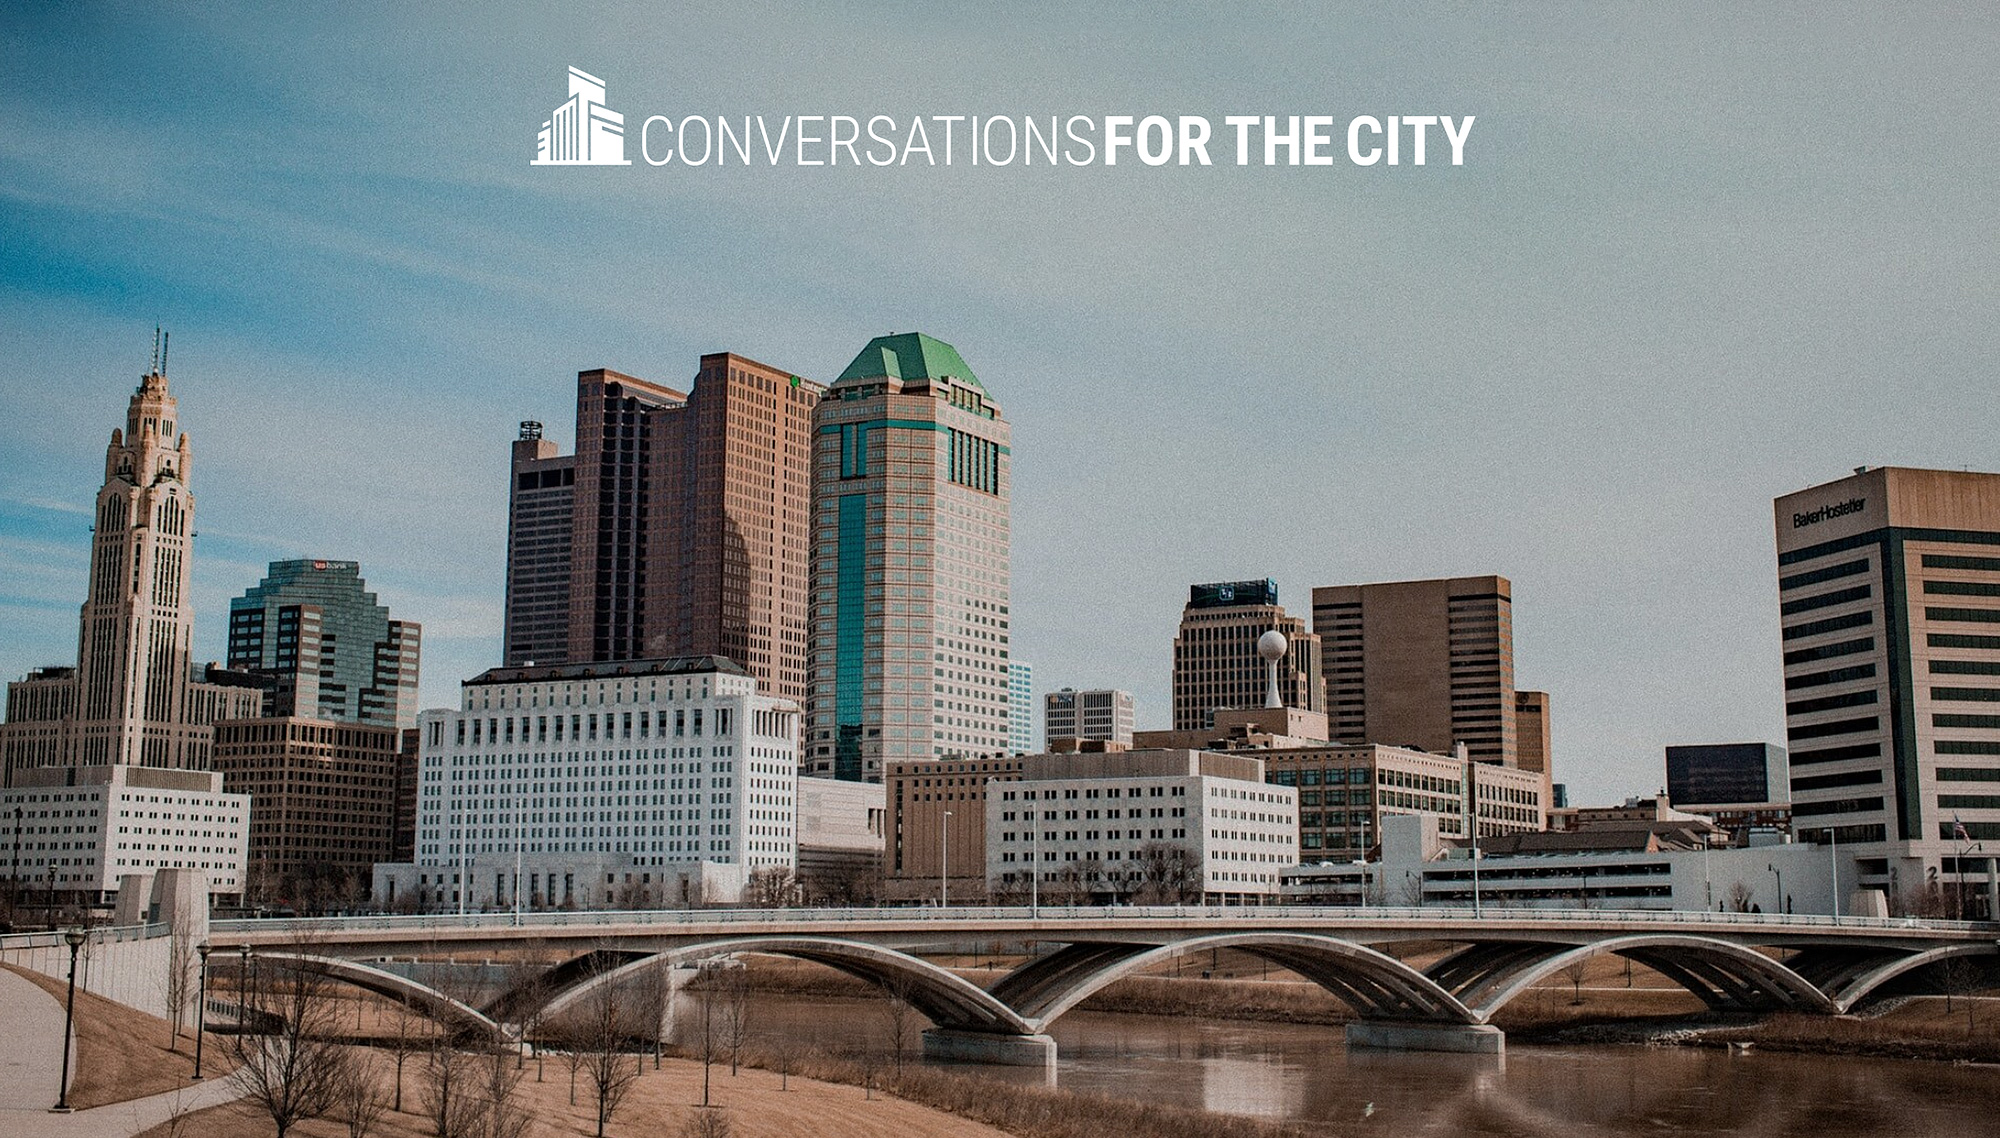 Conversations For The City